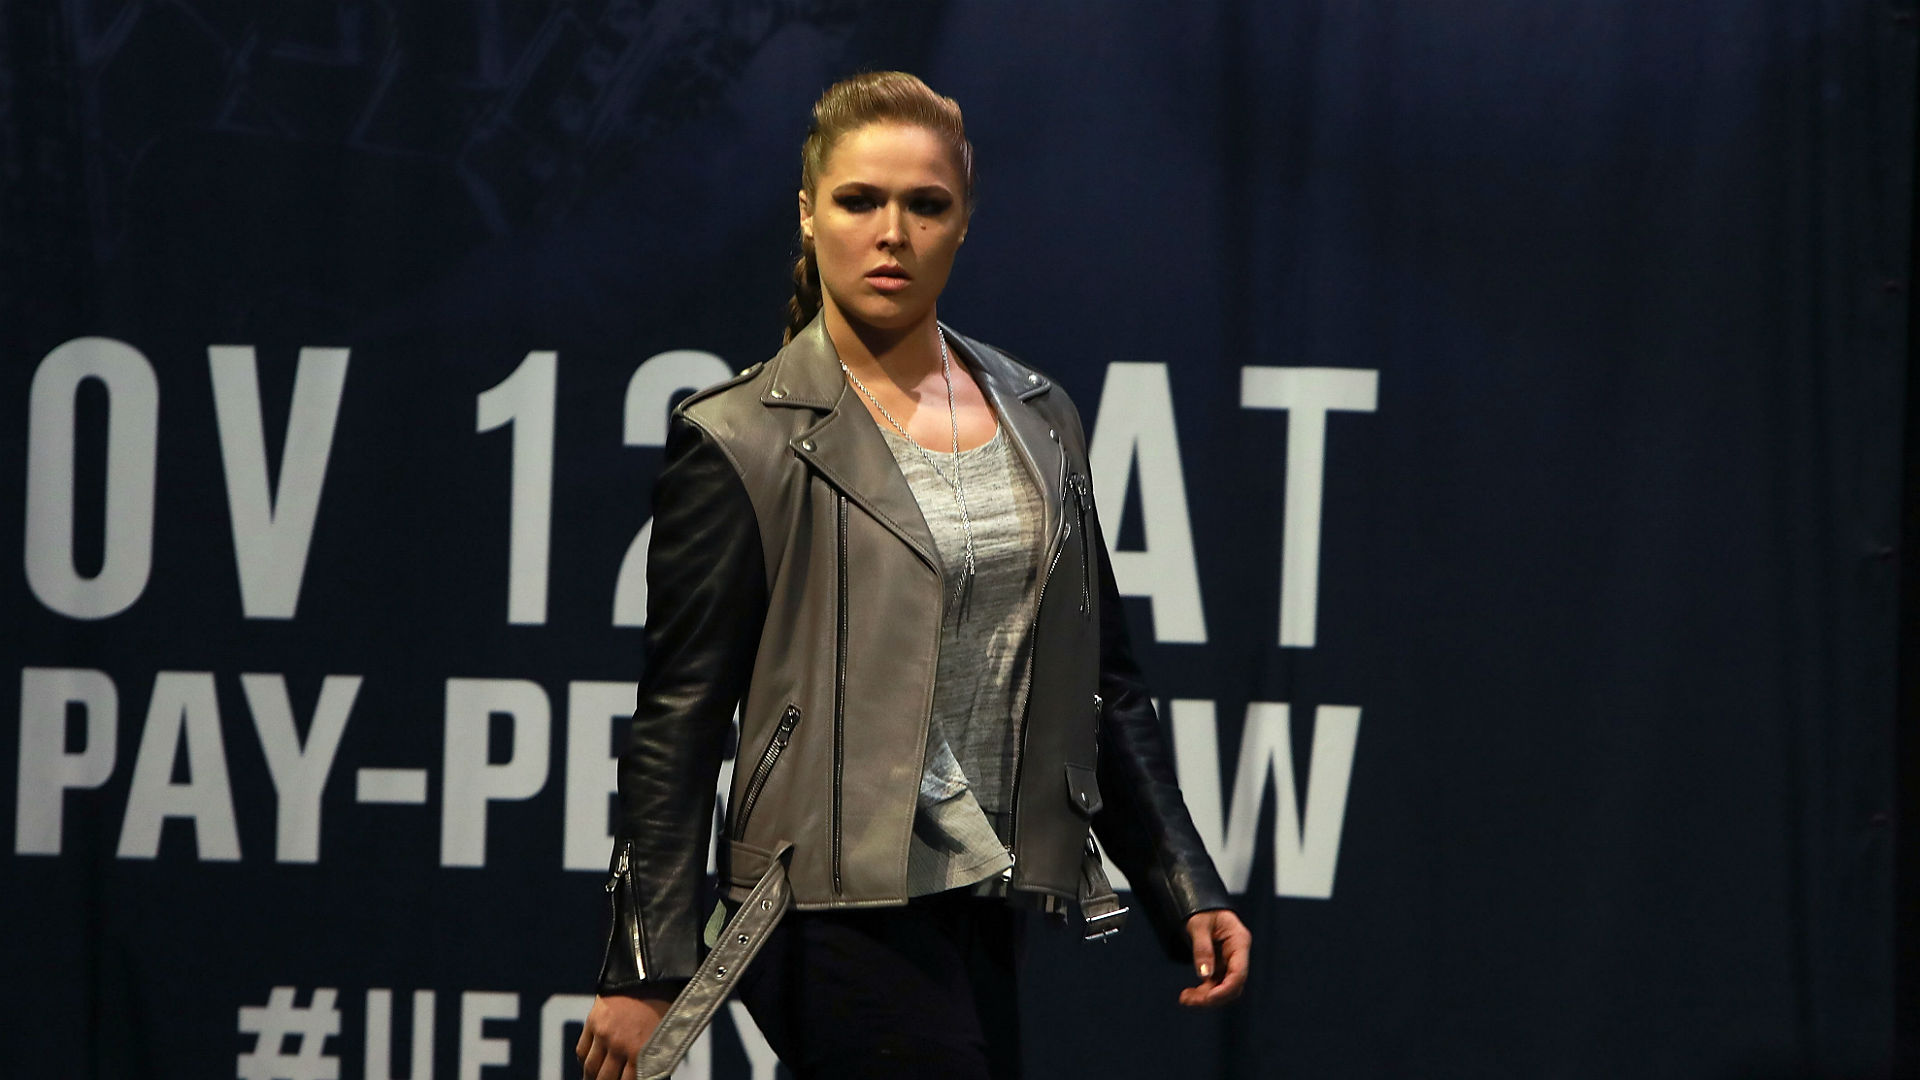 Ronda Rousey weds UFC fighter Travis Browne, but where are the details?